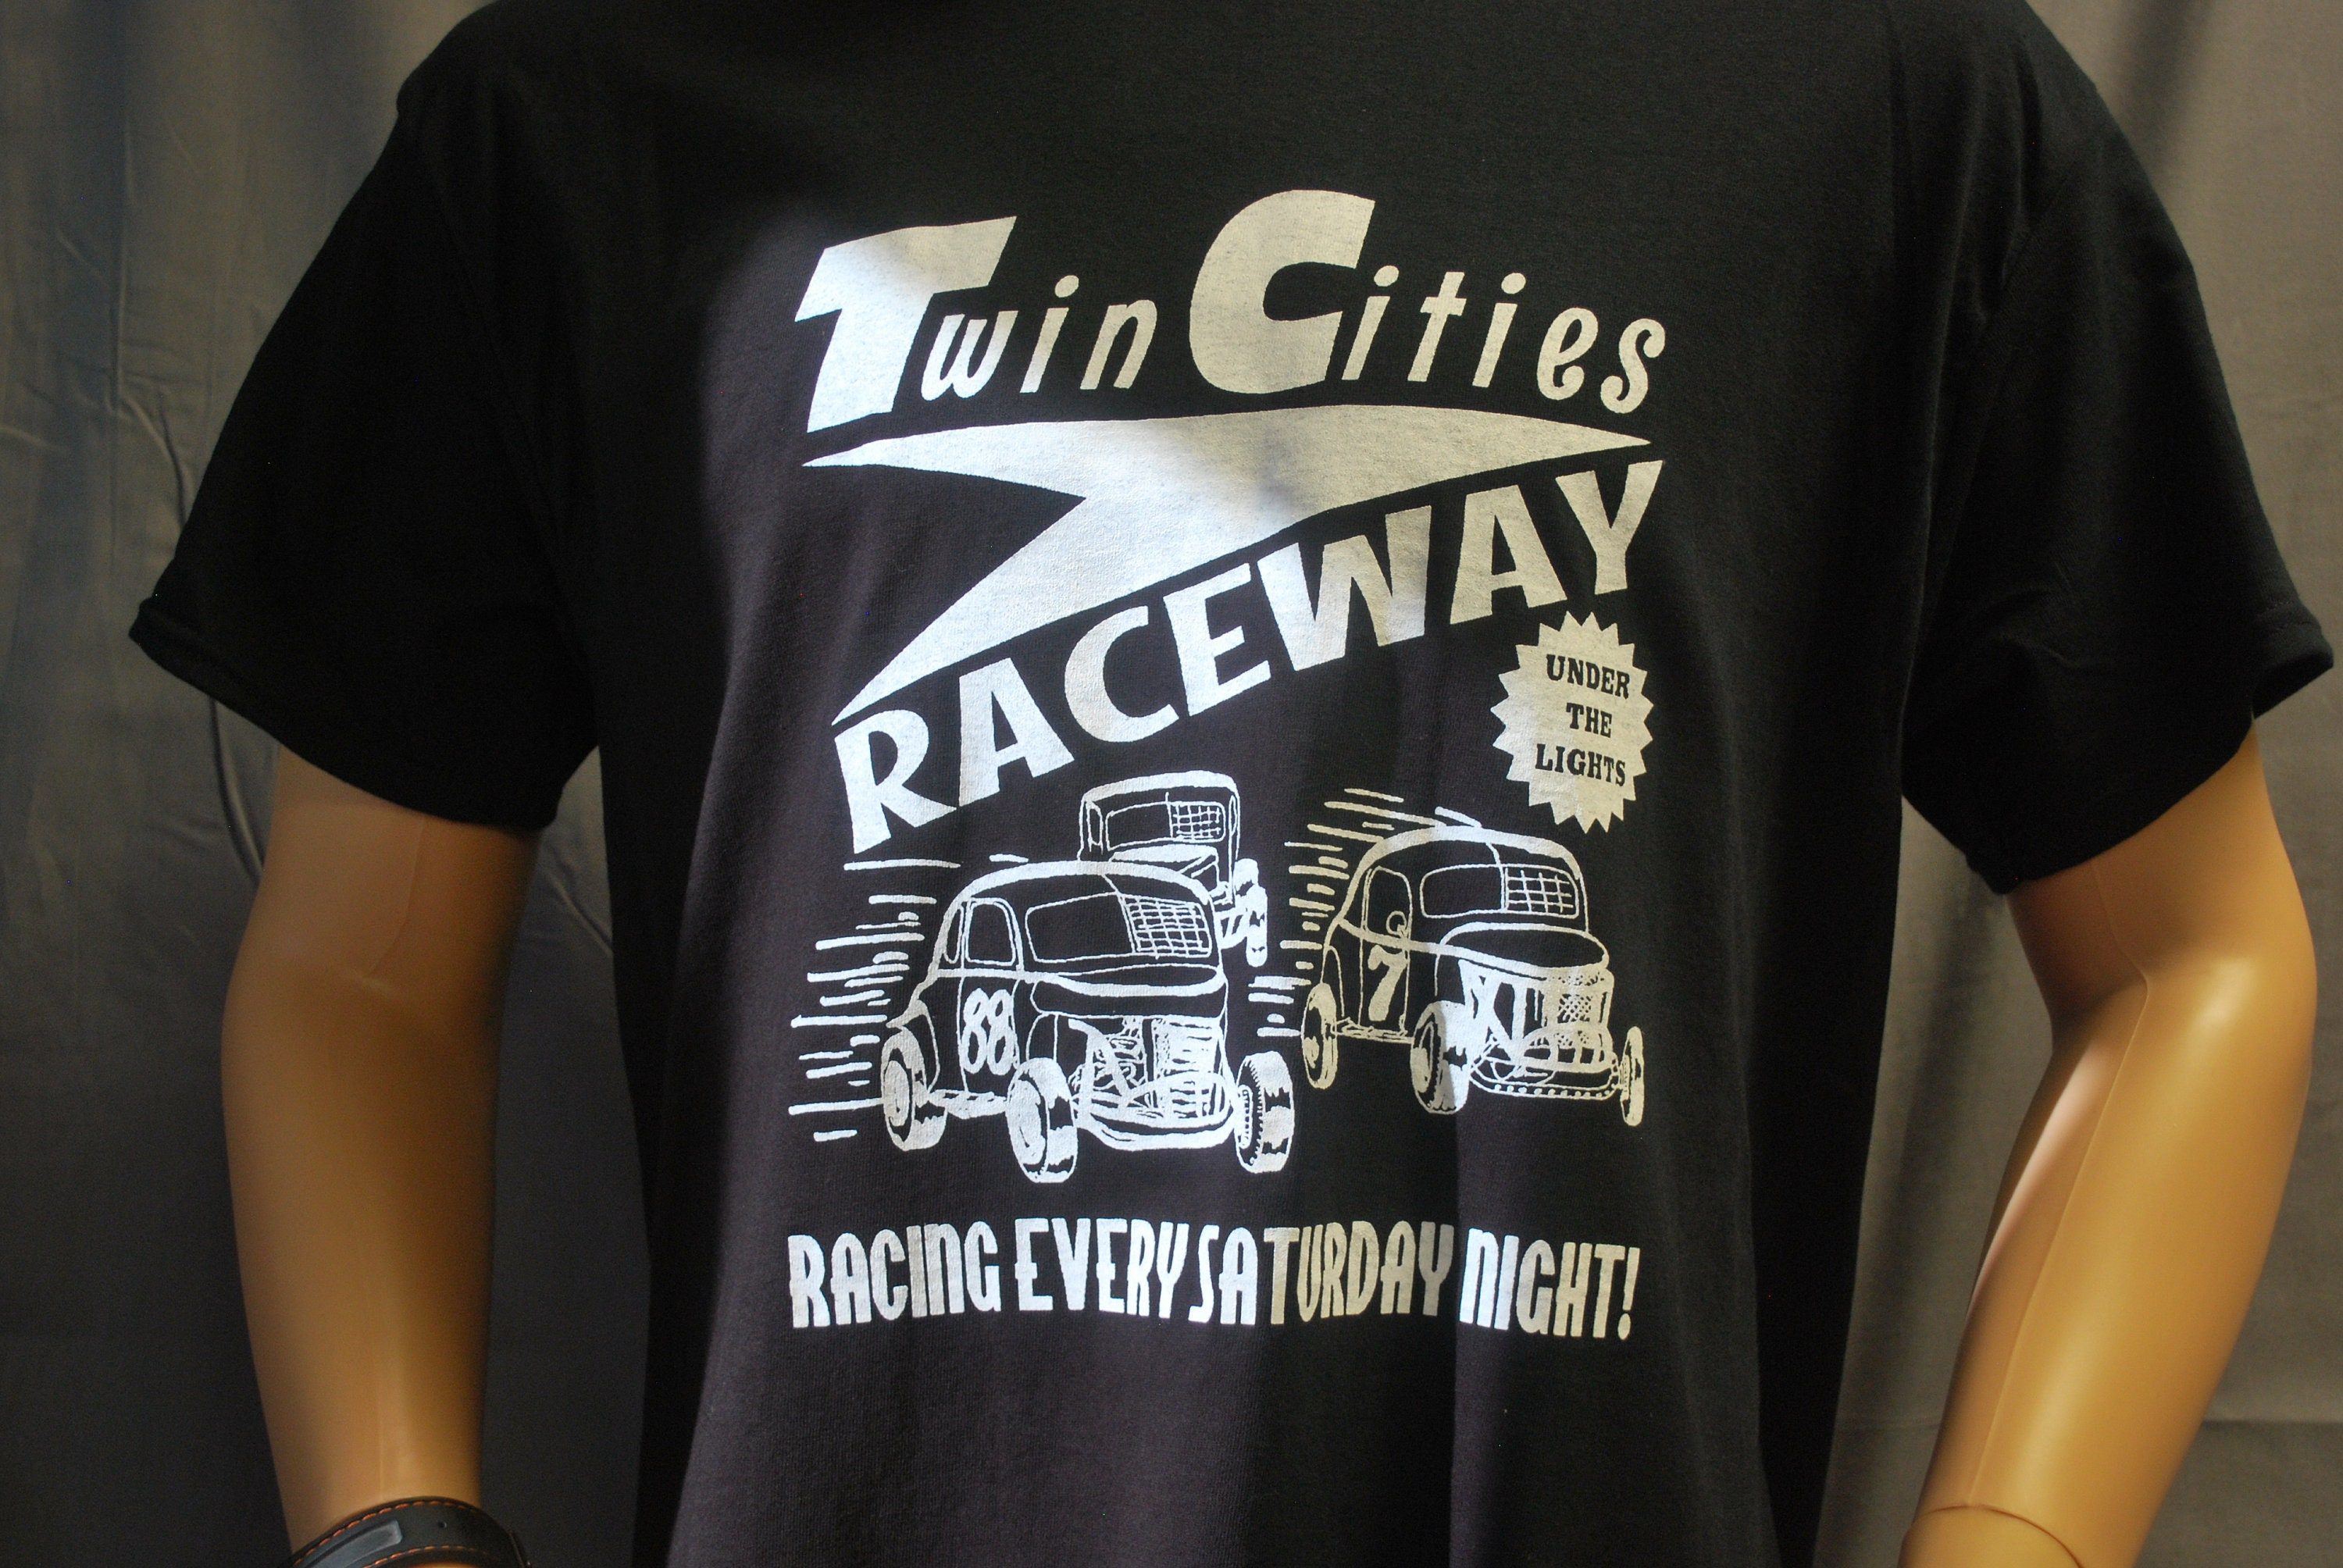 1950s Men's Ties, Bow Ties – Vintage, Skinny, Knit T-Shirt Twin Cities Raceway Jalopy Mens Adult Tee By Race City Retro Vintage Rockabilly Nostalgia Modified Automotive Race Dirt Track Gift $16.95 AT vintagedancer.com